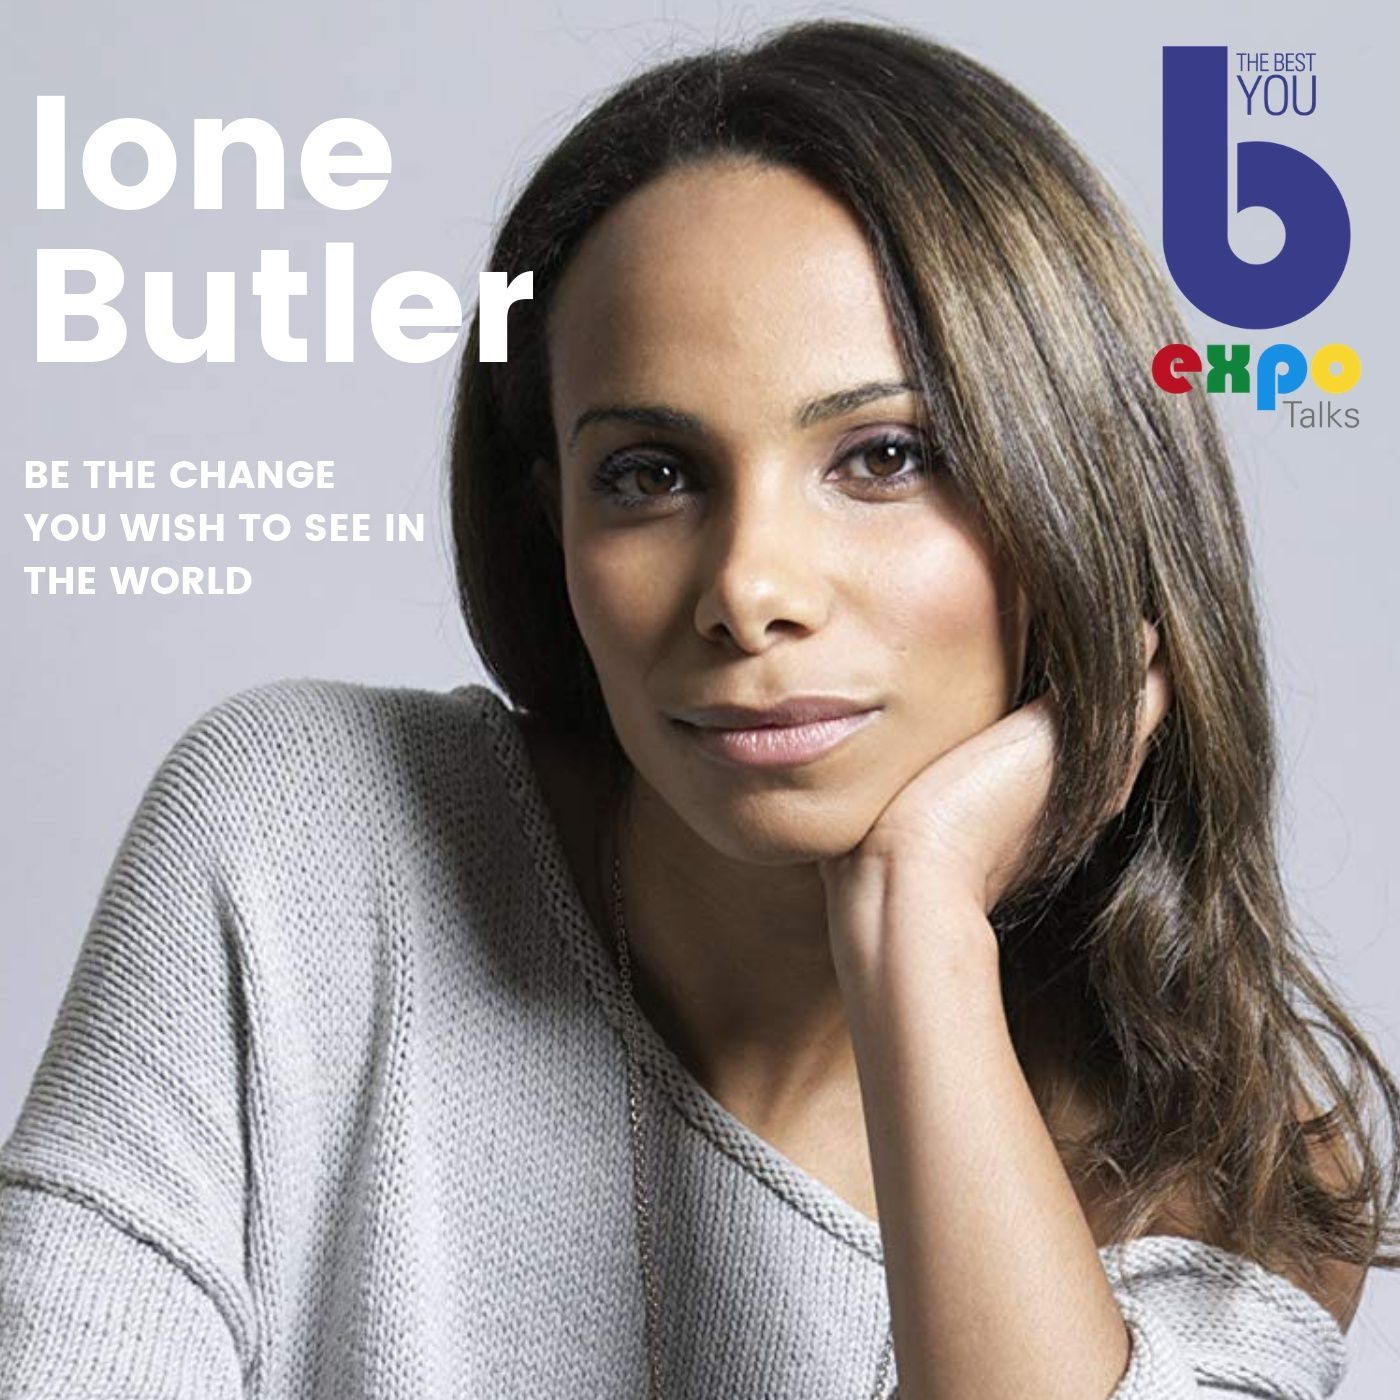 Listen to Iona Butler at The Best You EXPO